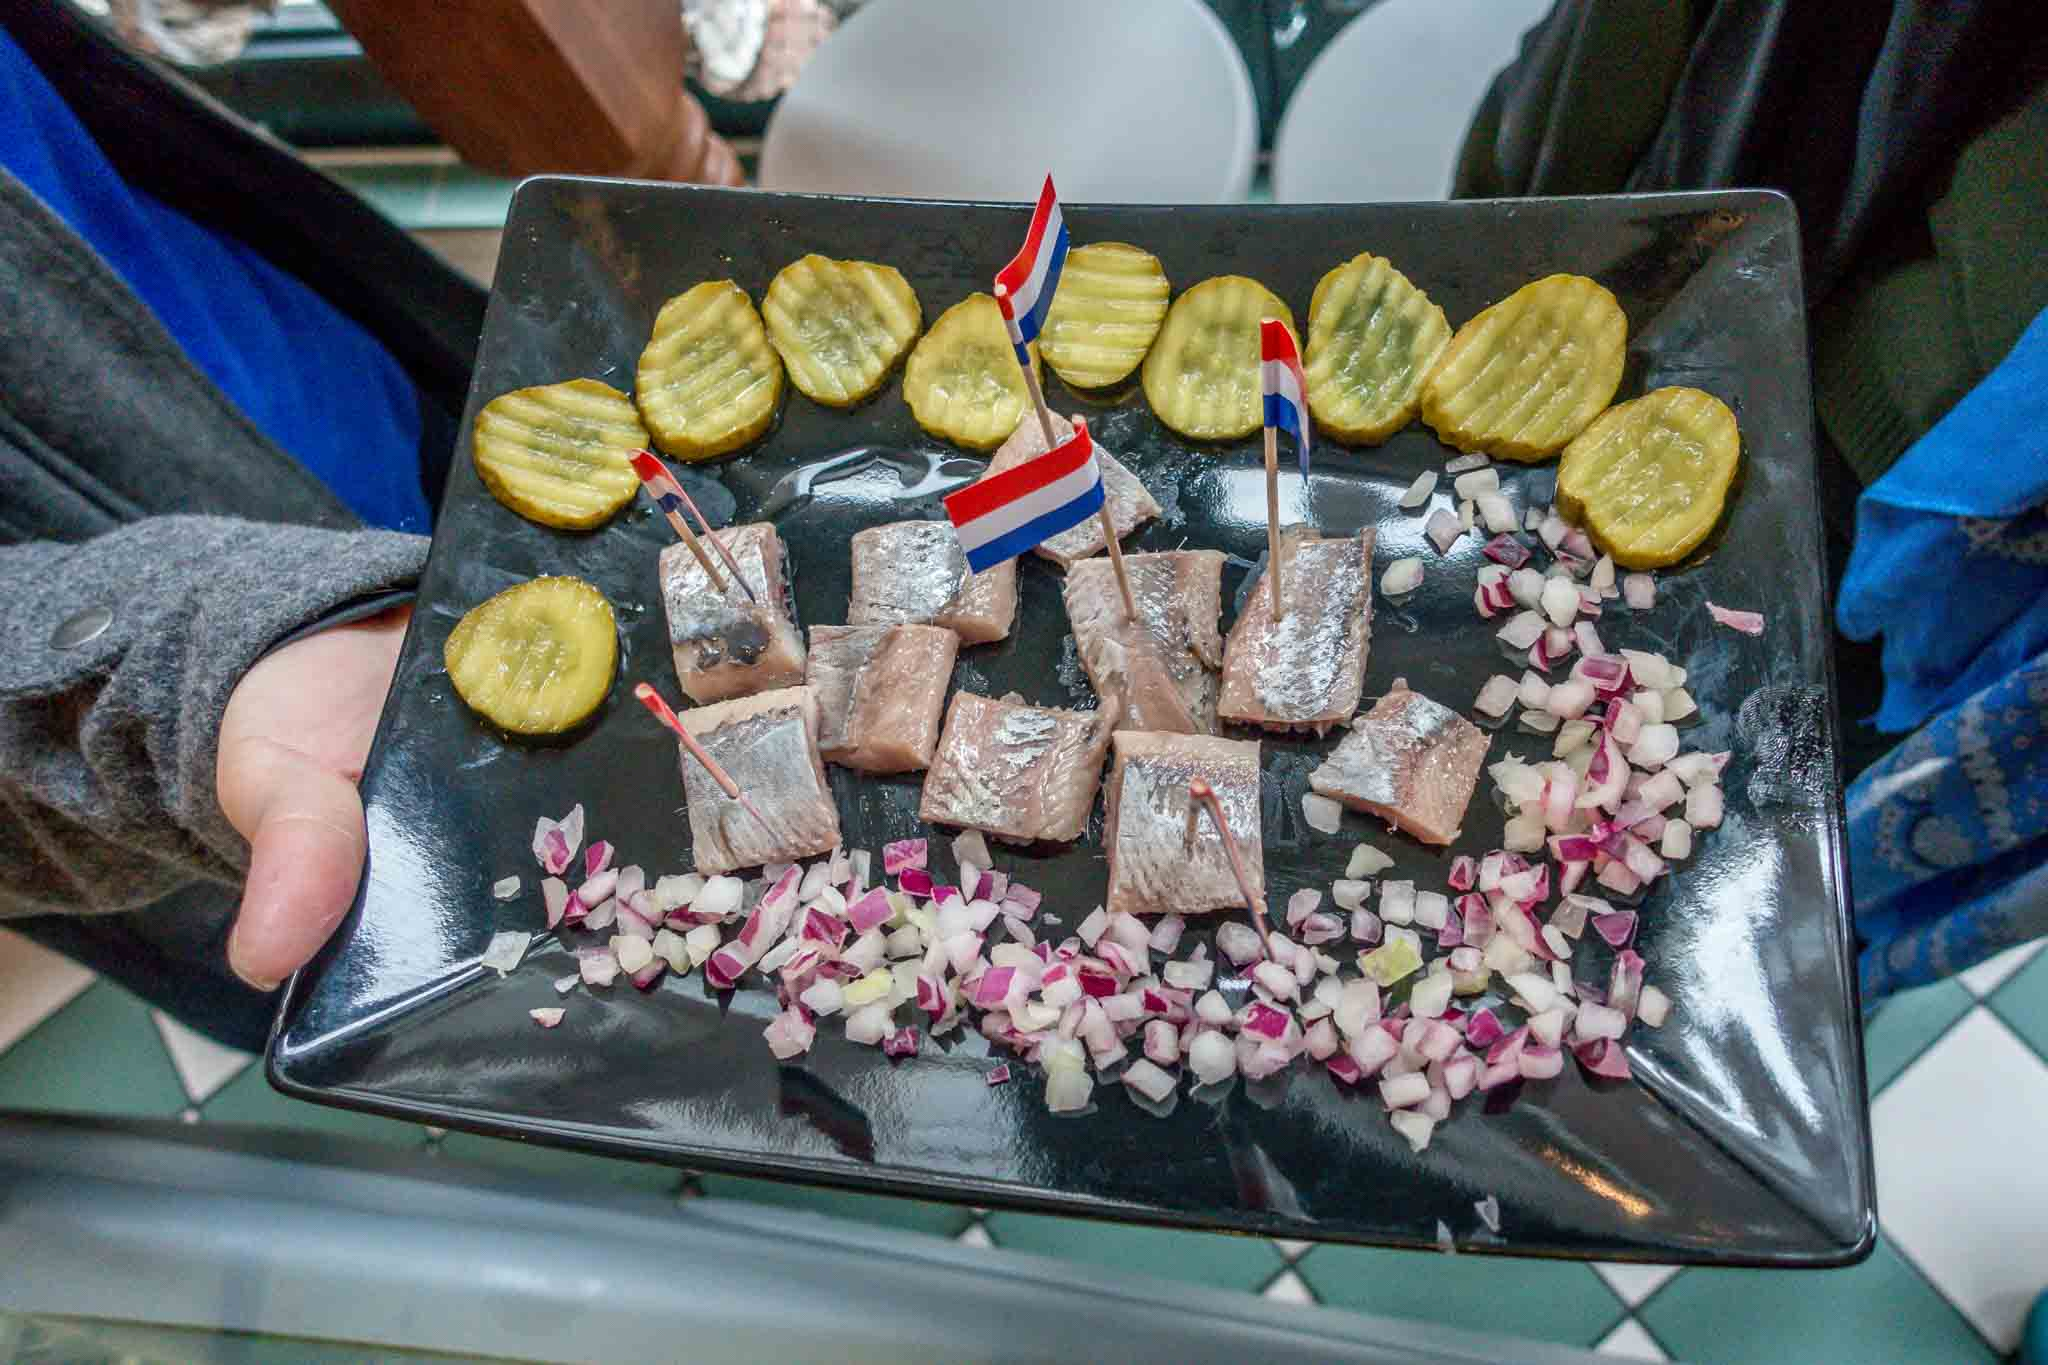 Pickled herring with onions and pickles on a platter